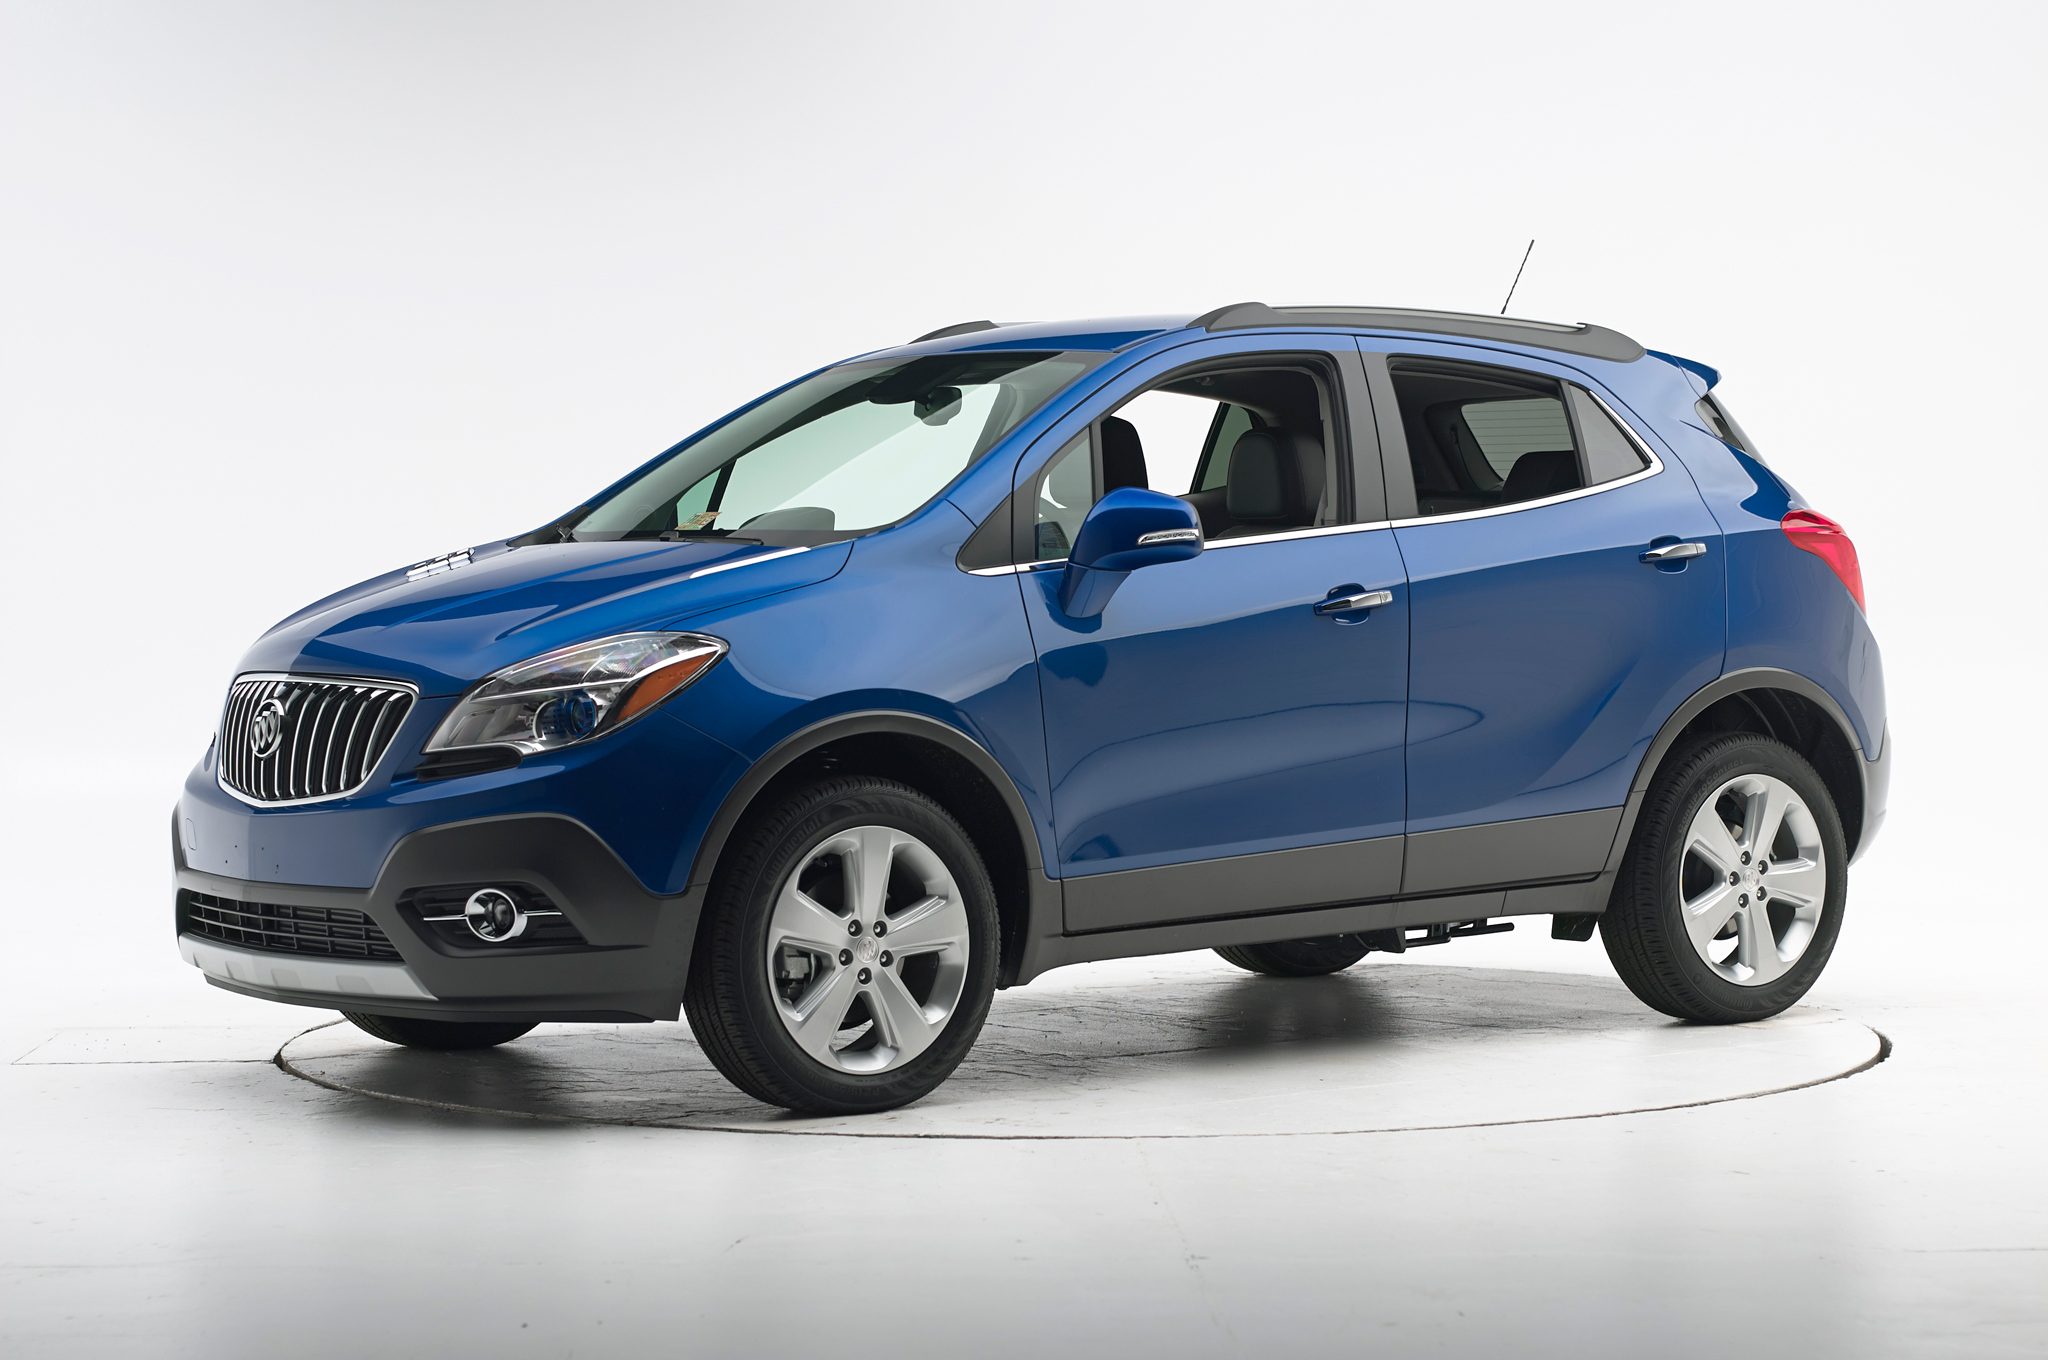 buick far buickimg than as analysts dealers r predictions surprised gm encore demand pleasantly review higher